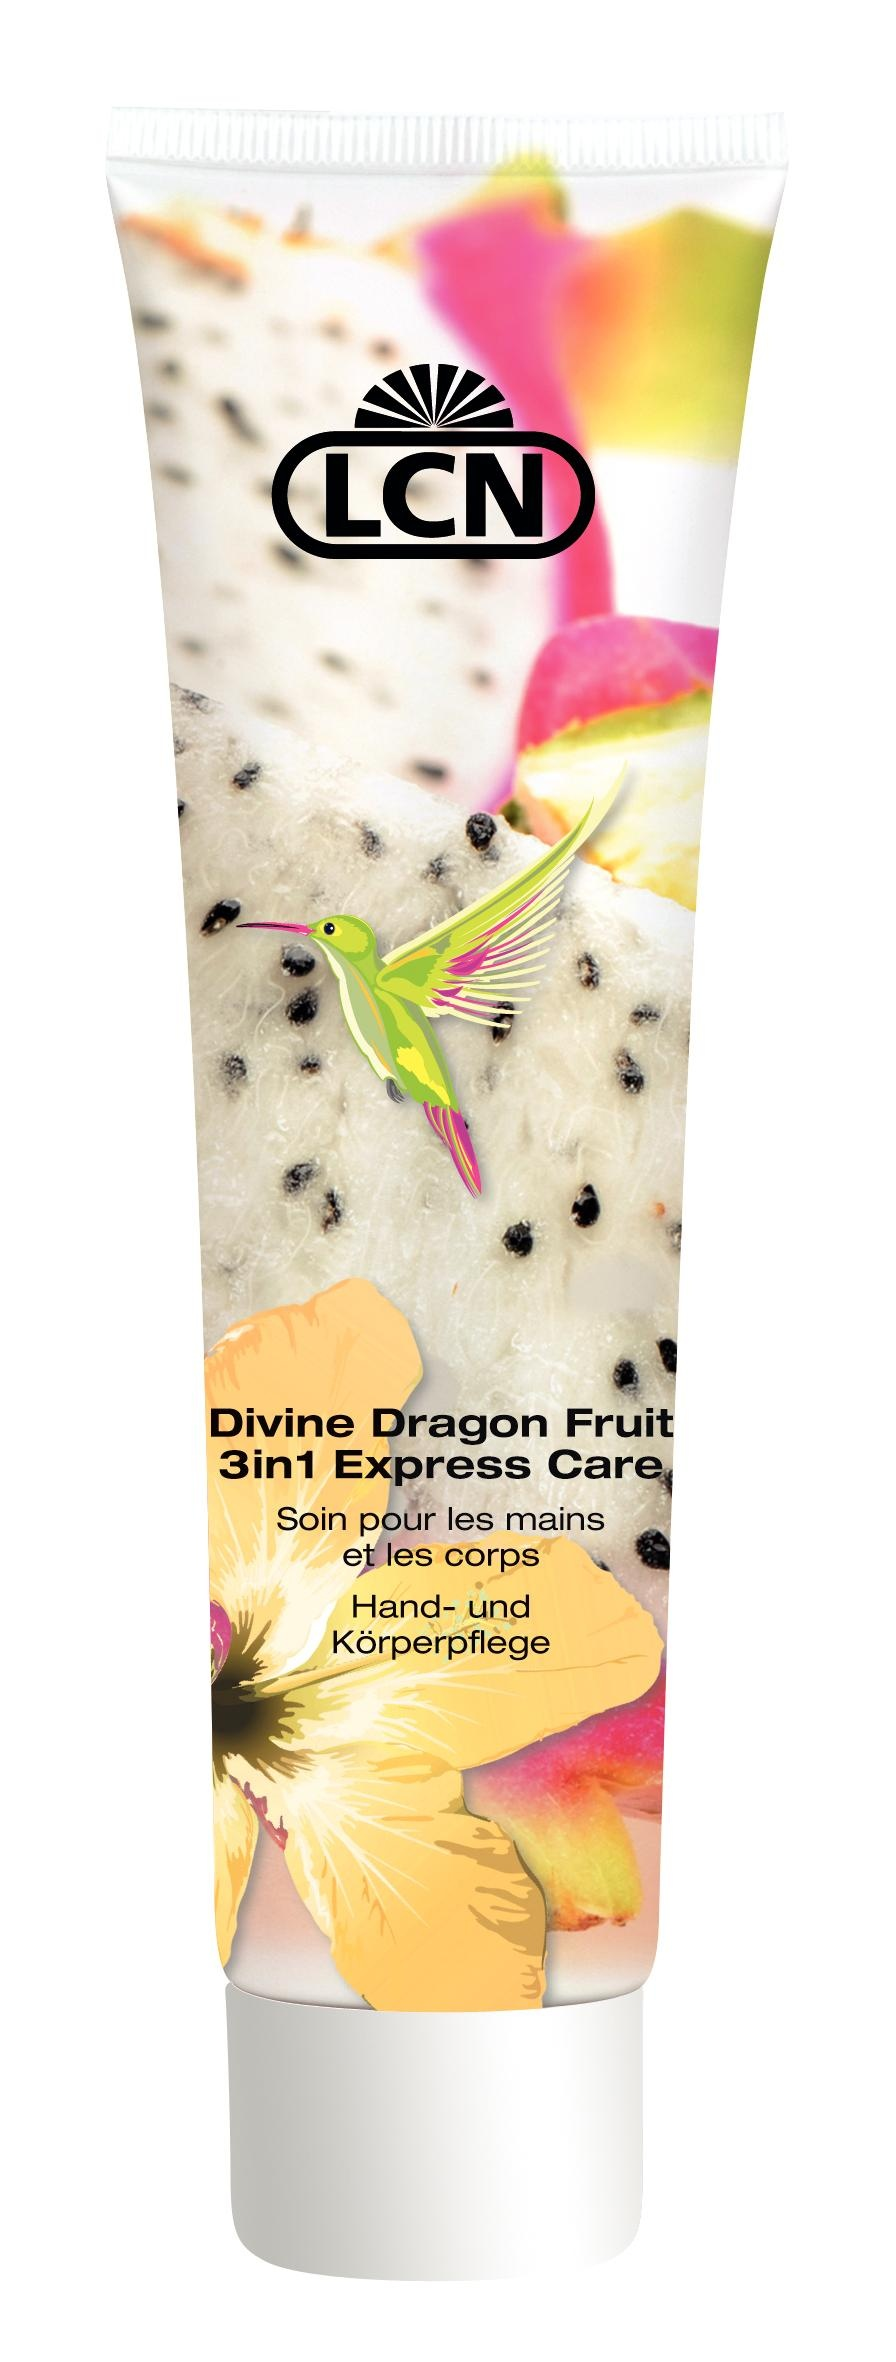 3In1 Express Care-Divine Dragon Fruit, 100ml